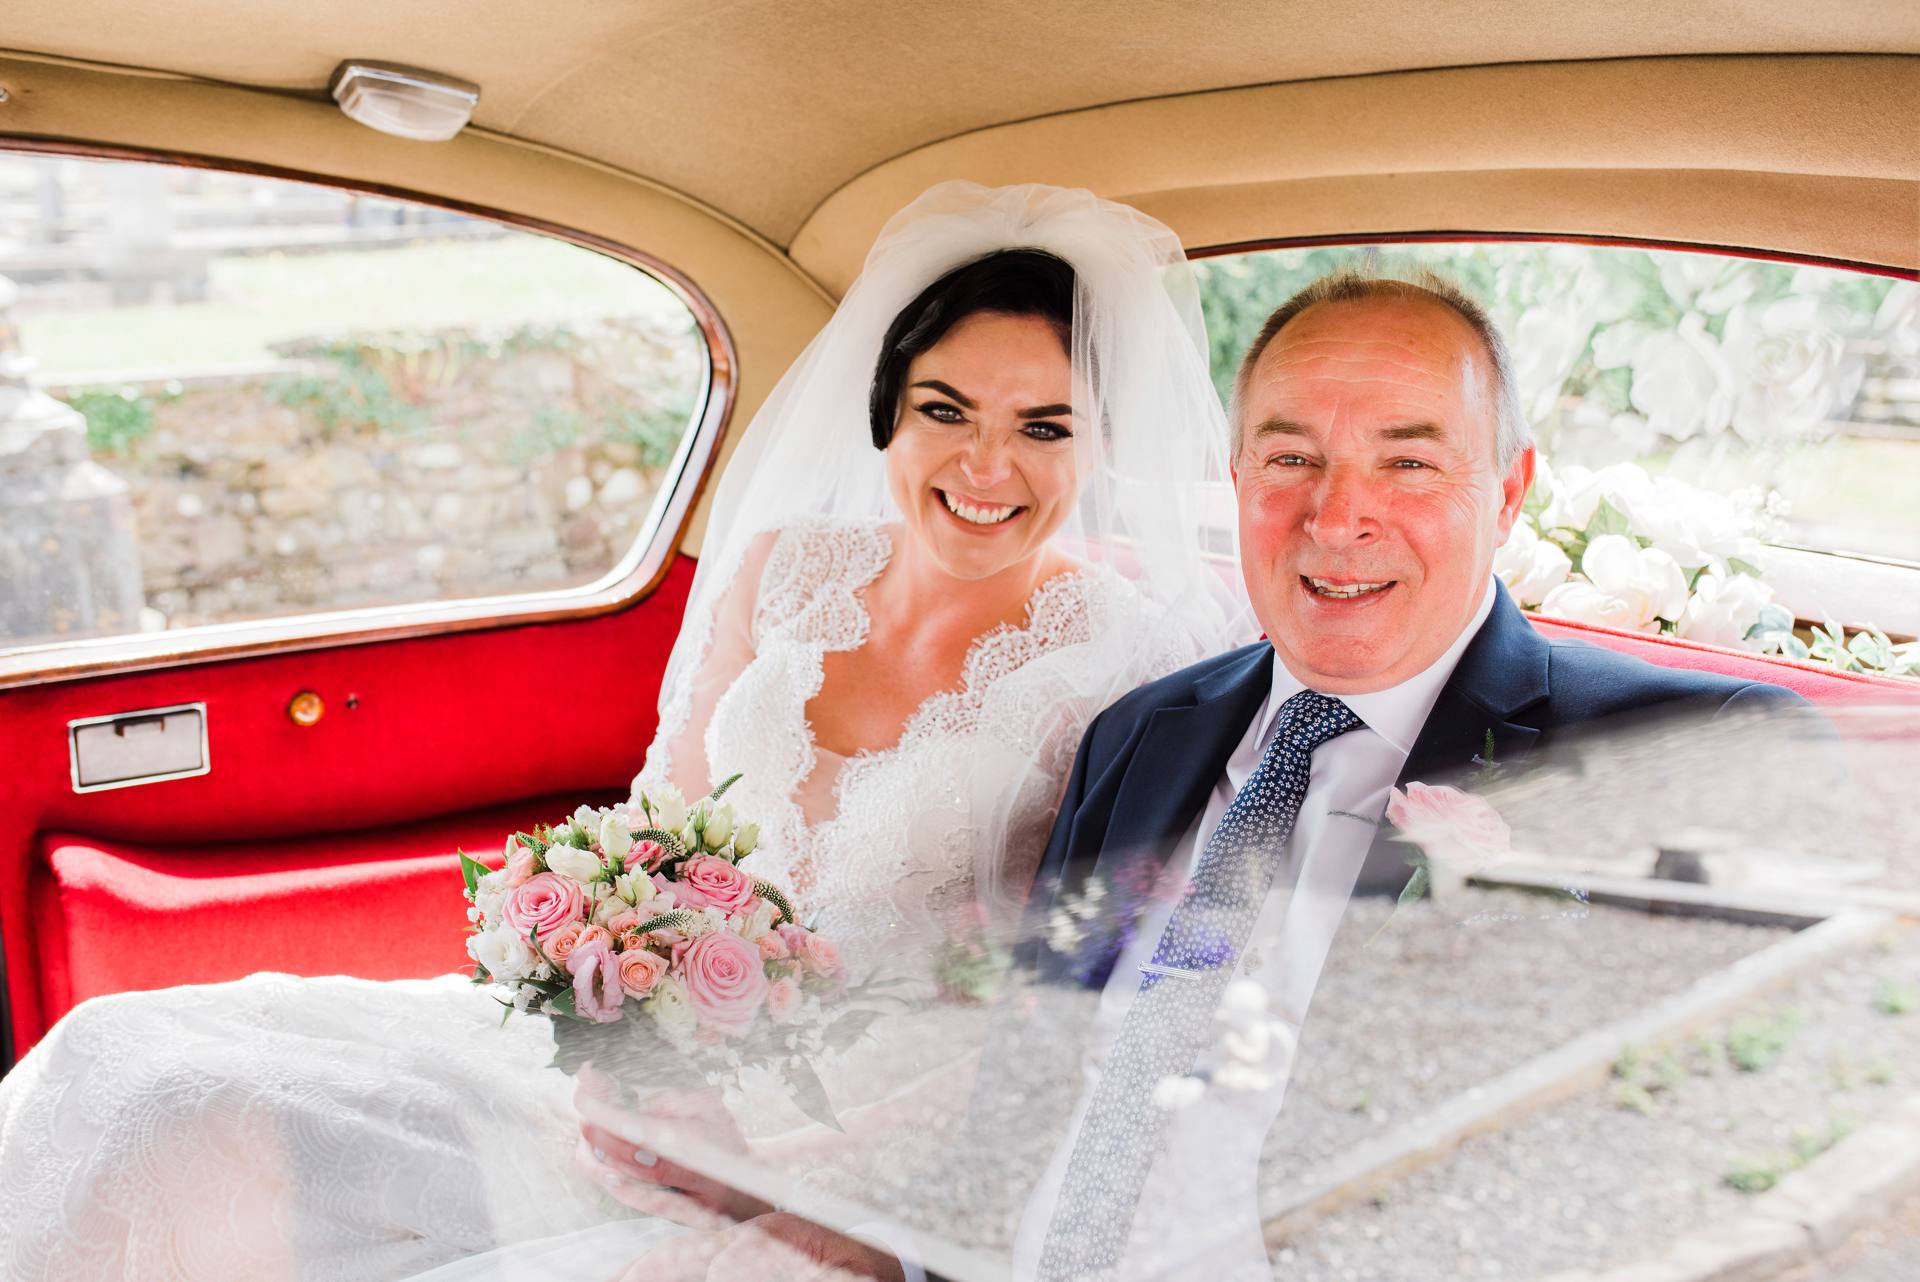 Bride sitting in the backseat of a car with her father